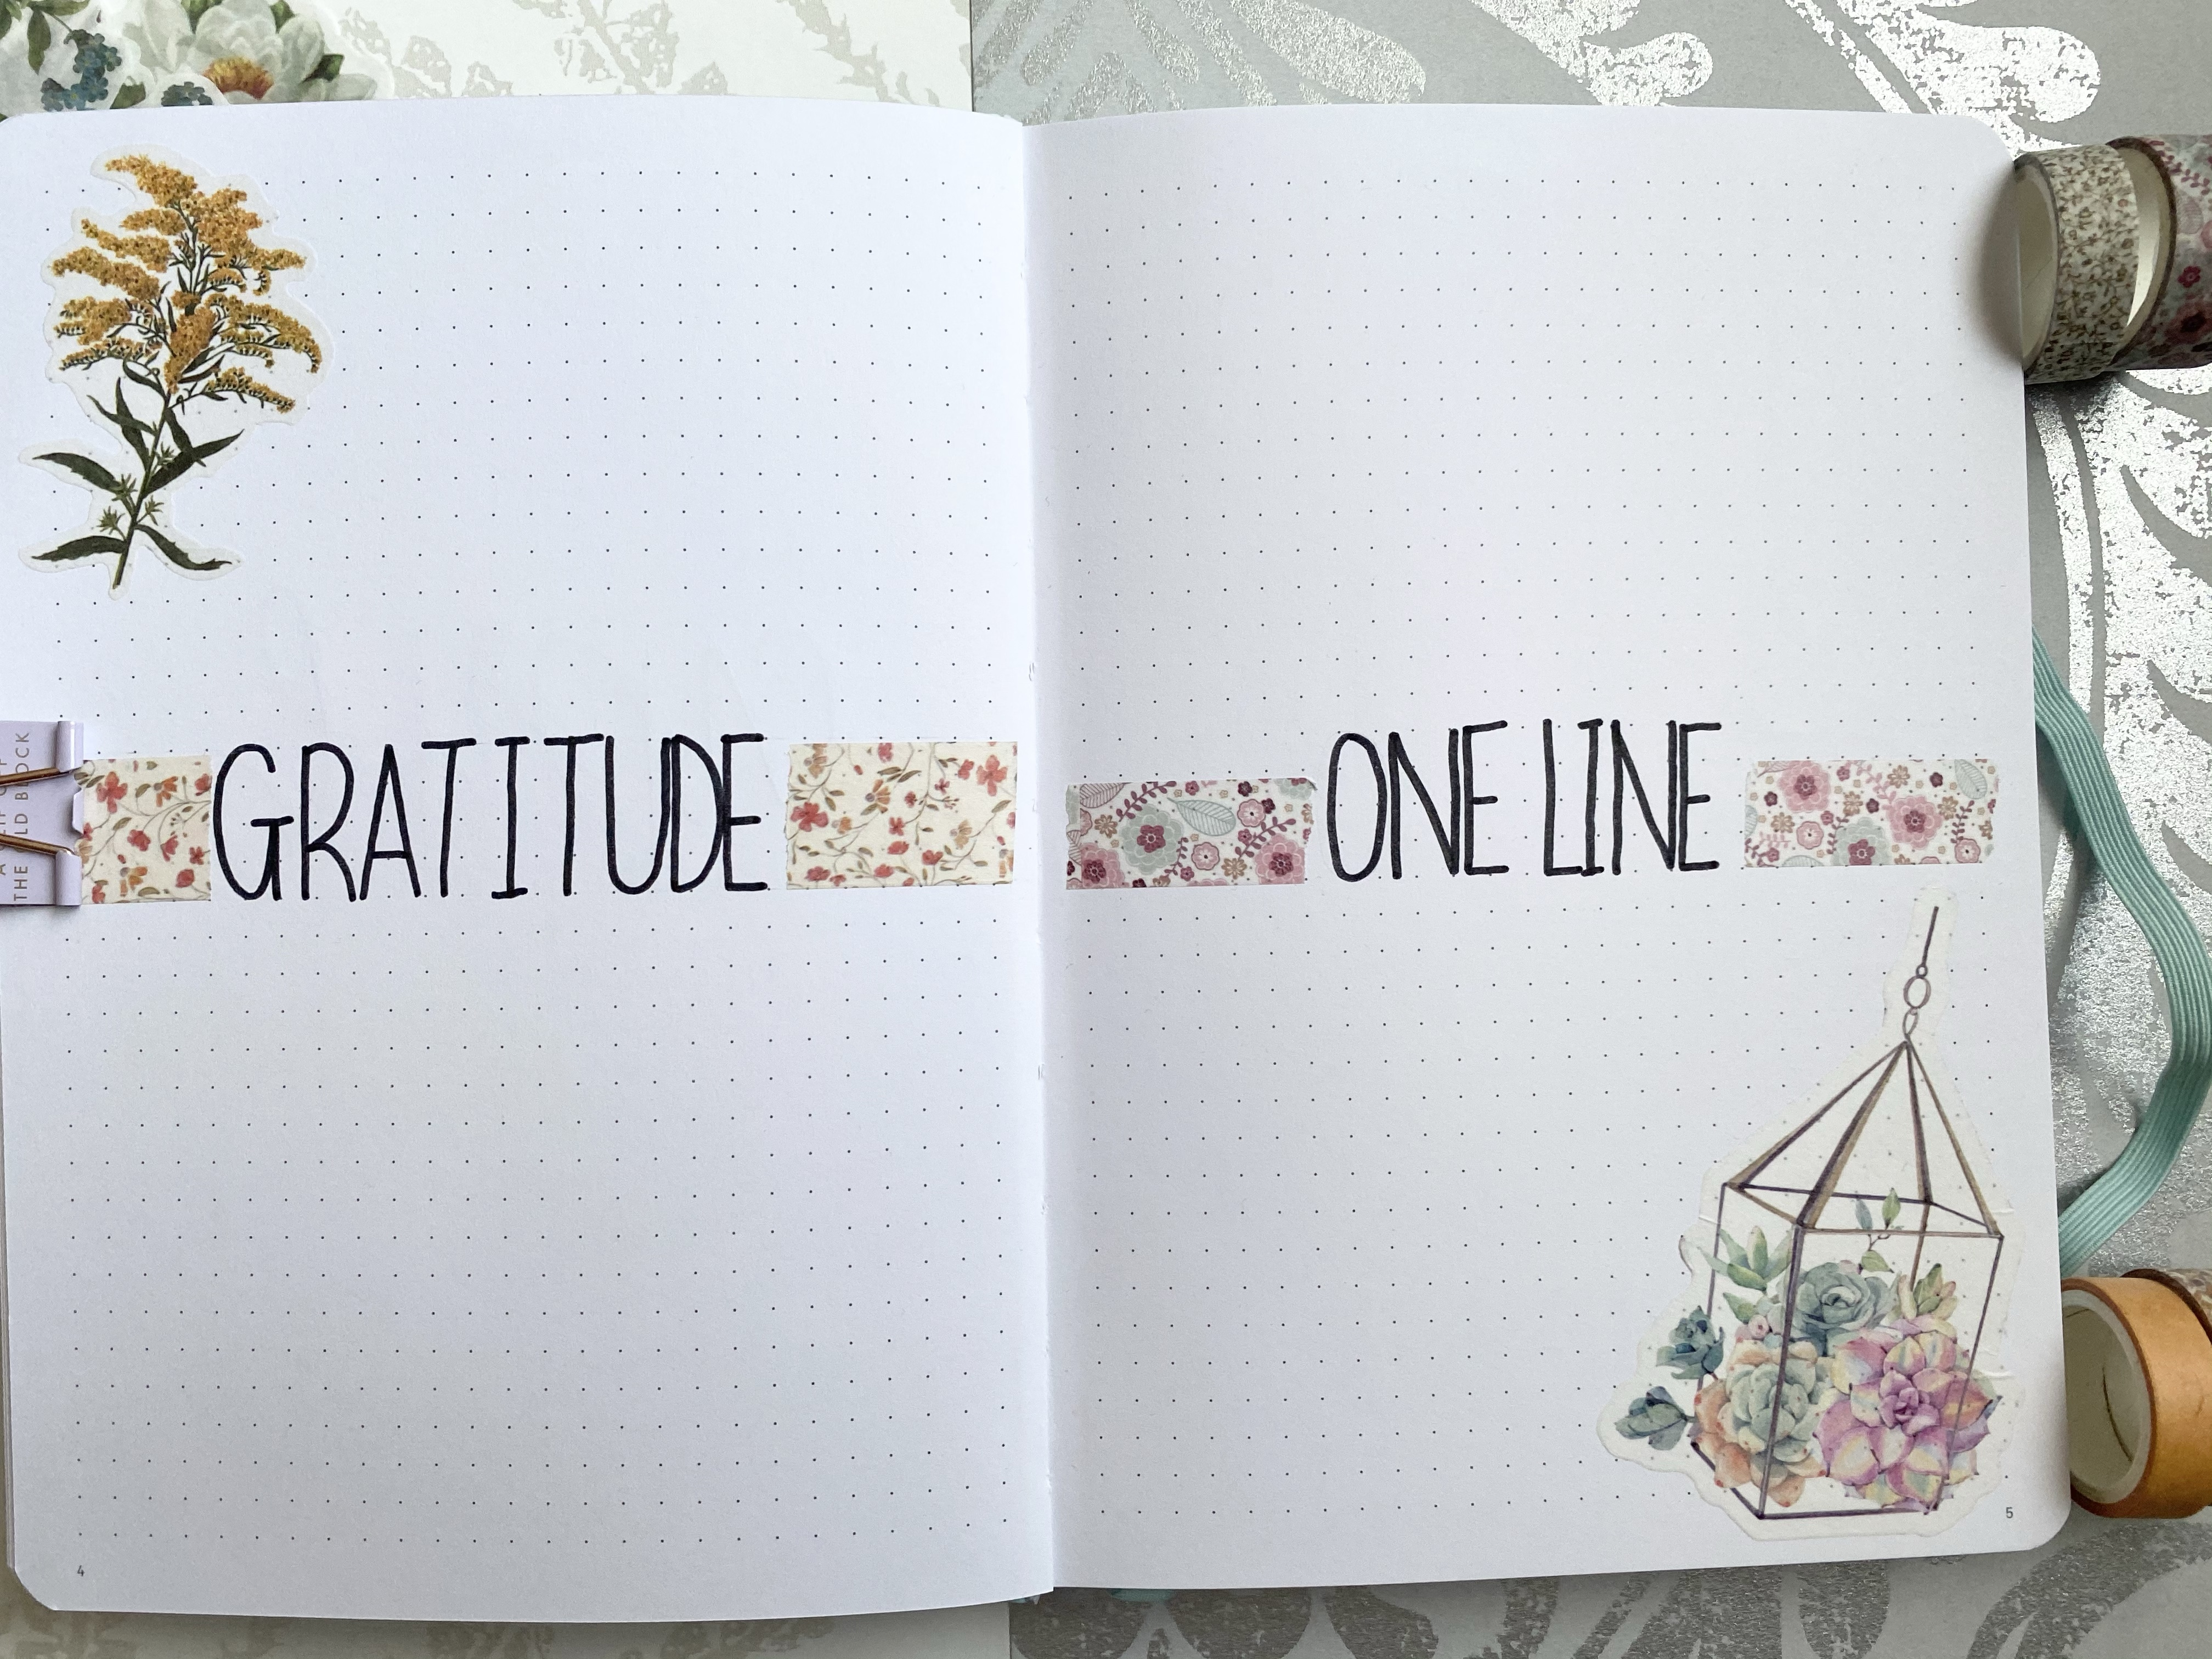 A bullet journal double page spread. On the left side page is gratitude written in the middle with floral washi tape either side with a floral sticker in the left hand corner. On the right page is one line in the middle with floral washi tape either side and a floral sticker in the right bottom hand corner.